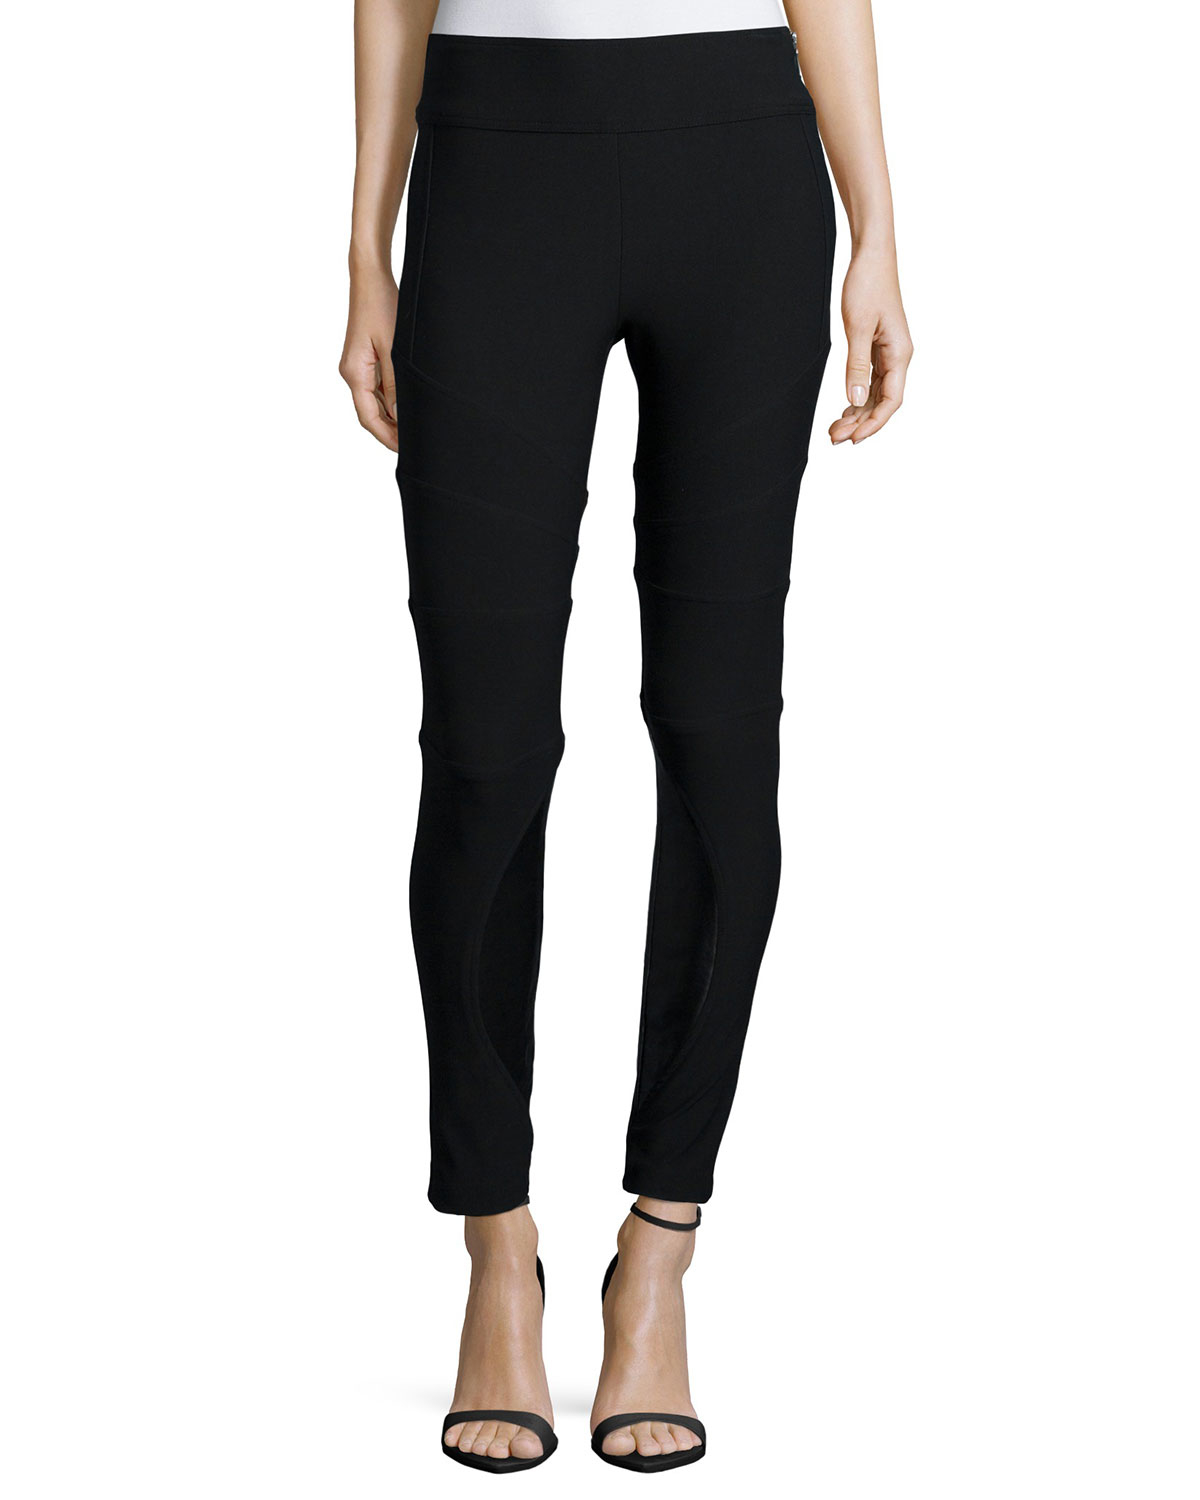 Available in Black and Stone Great Stretch Skinny Leg Zip Up Made in USA 74% Polyester 23% Rayon 3% Spandex.